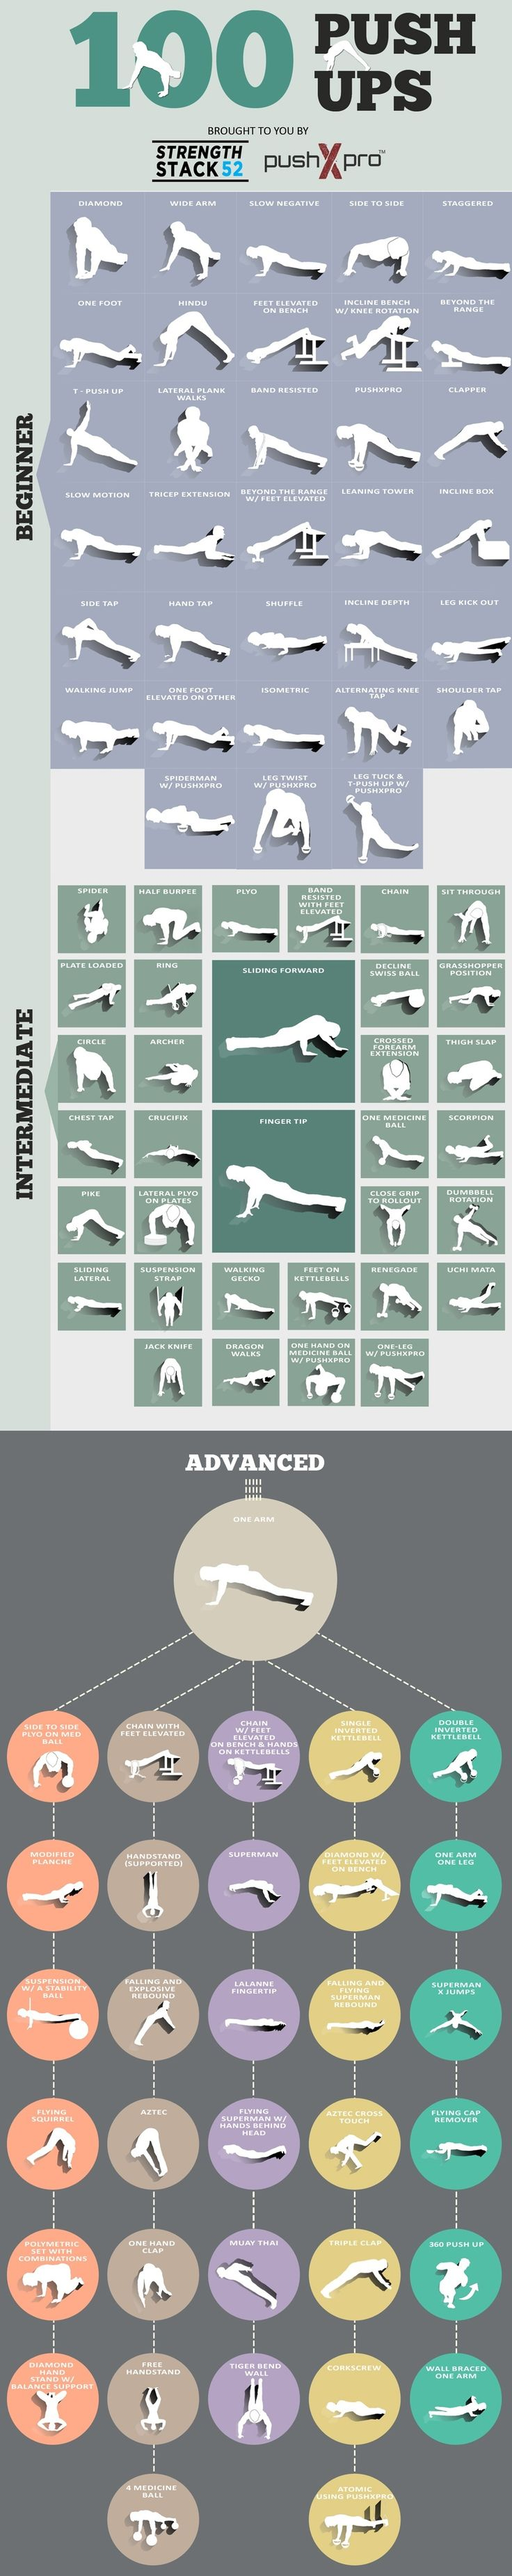 100 Push-Up Variations - Strength Stack 52